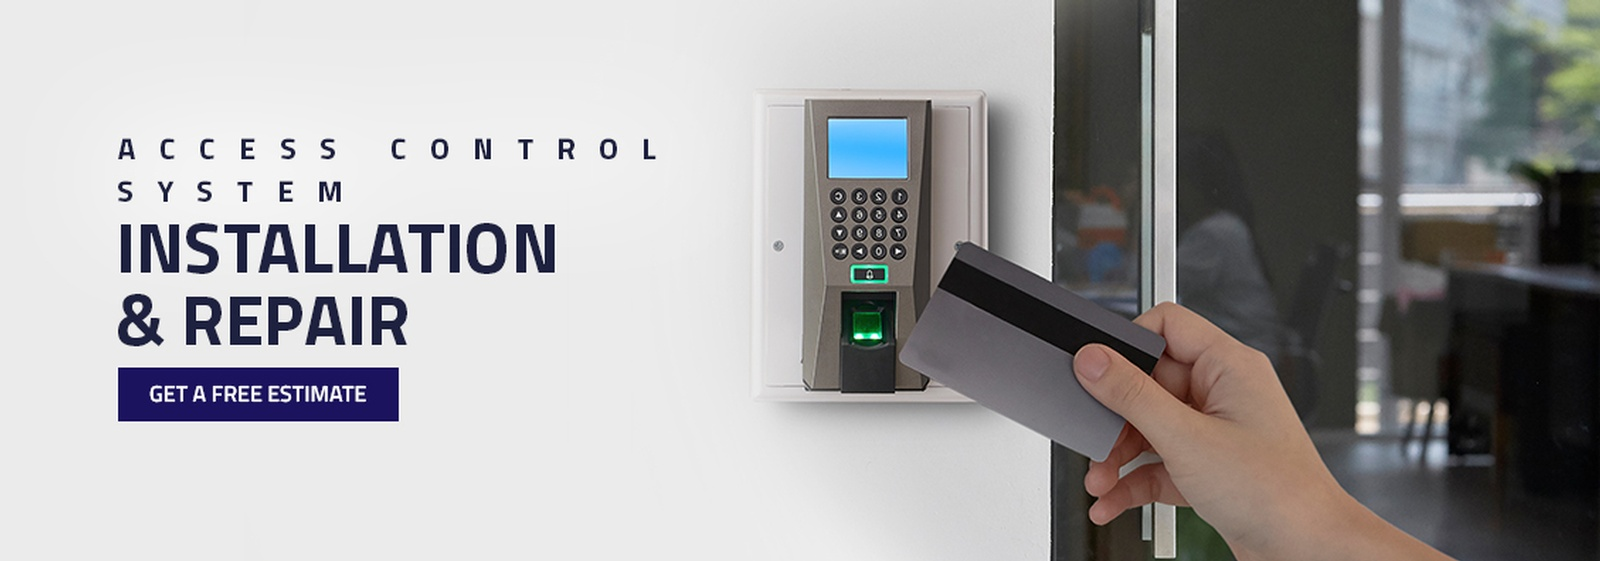 Access Control Systems Chicago